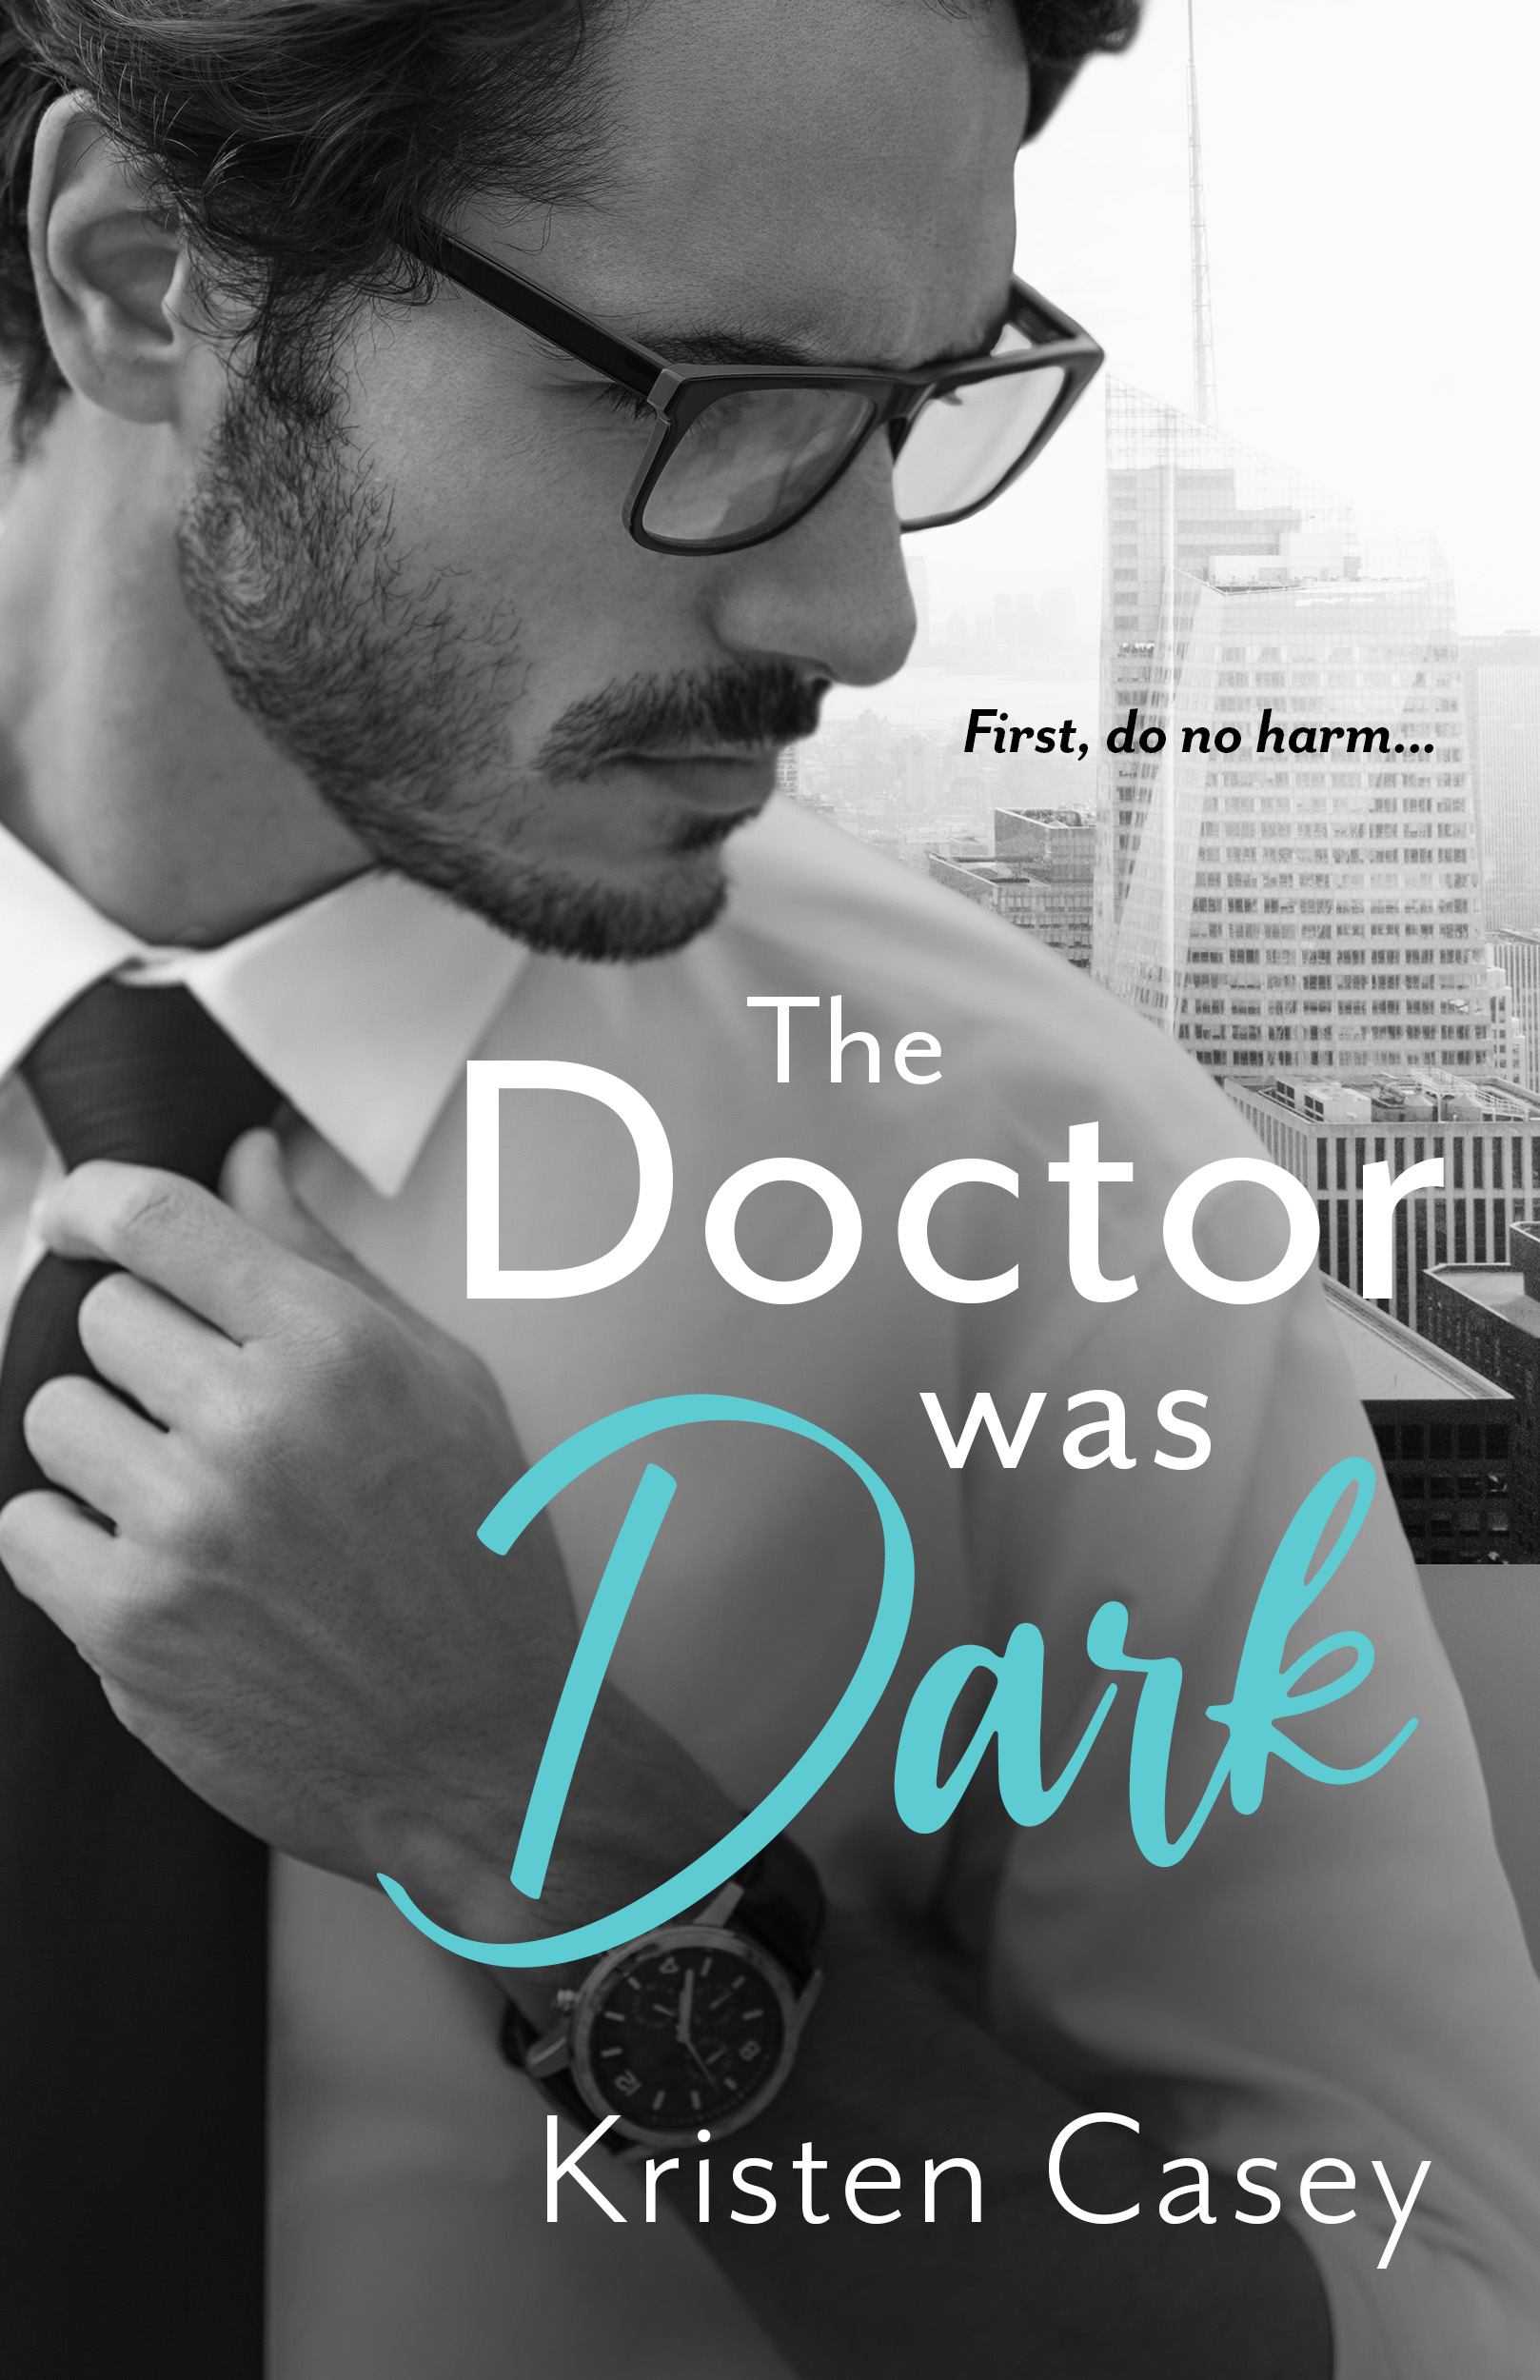 Book cover of The Doctor was Dark, showing a handsome man's profile with a cityscape in the background.